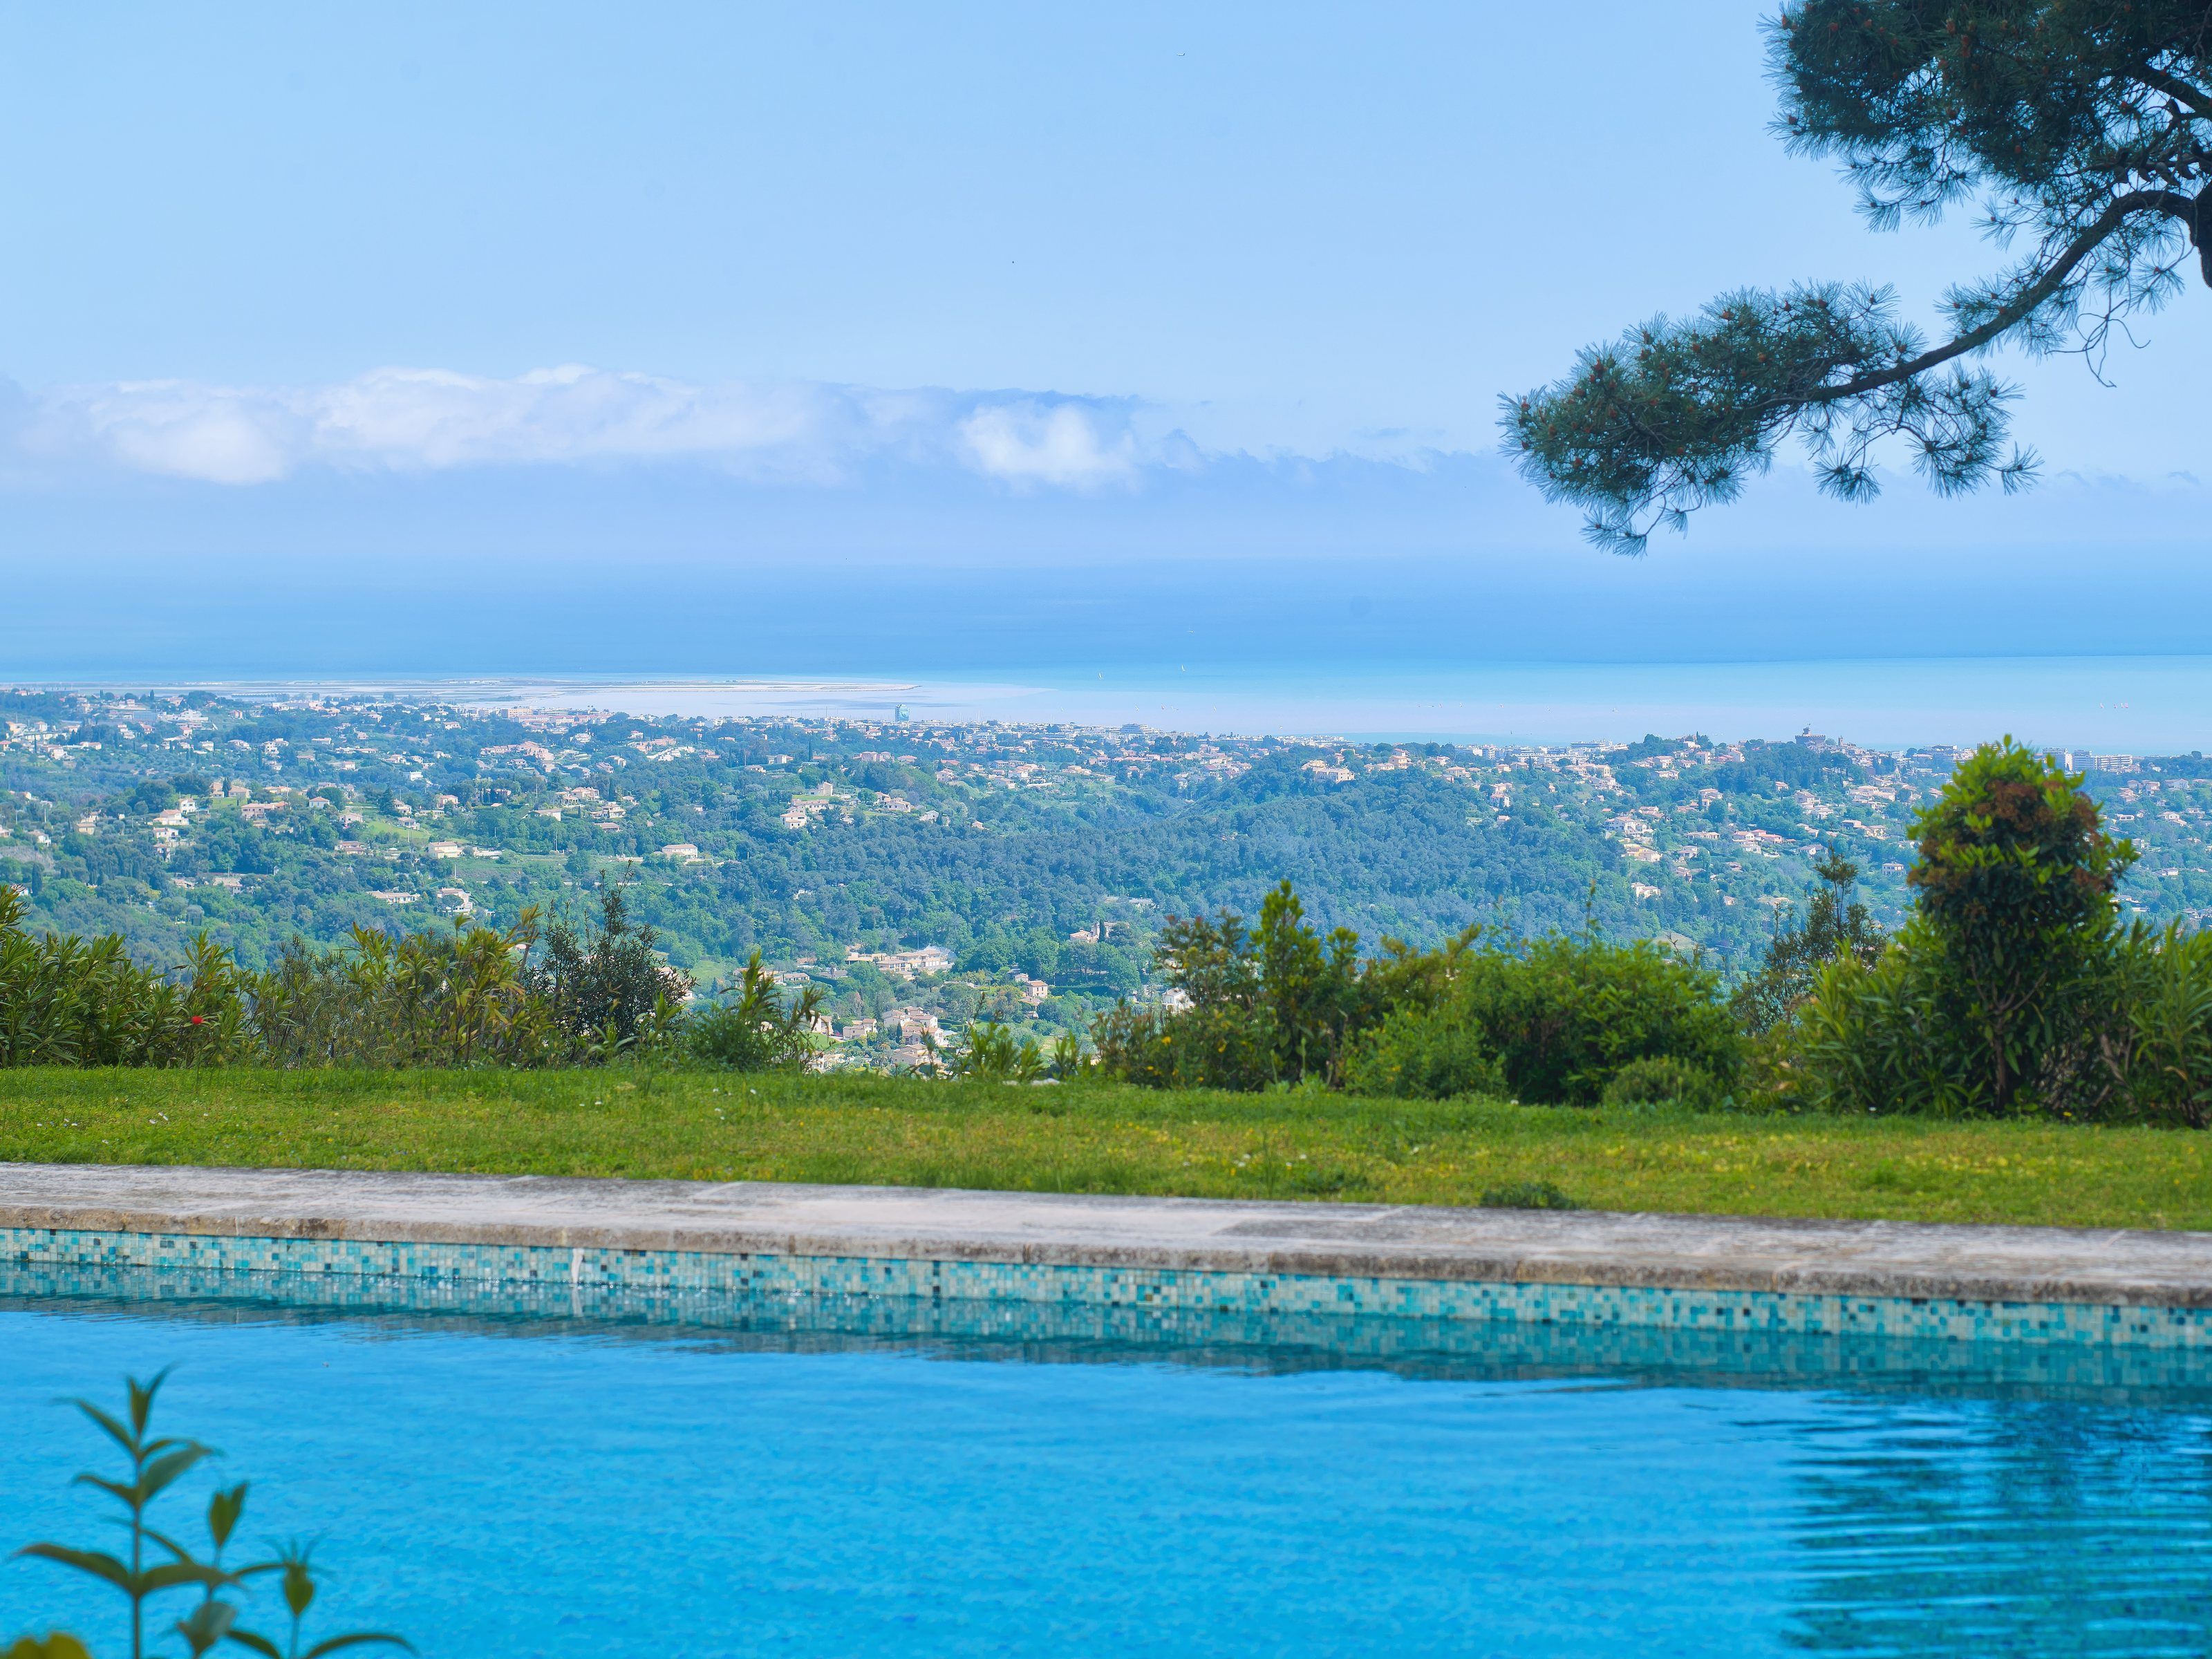 Single Family Home for Sale at Gorgeous Villa in St Paul de Vence with panoramic views Other France, Other Areas In France 06570 France